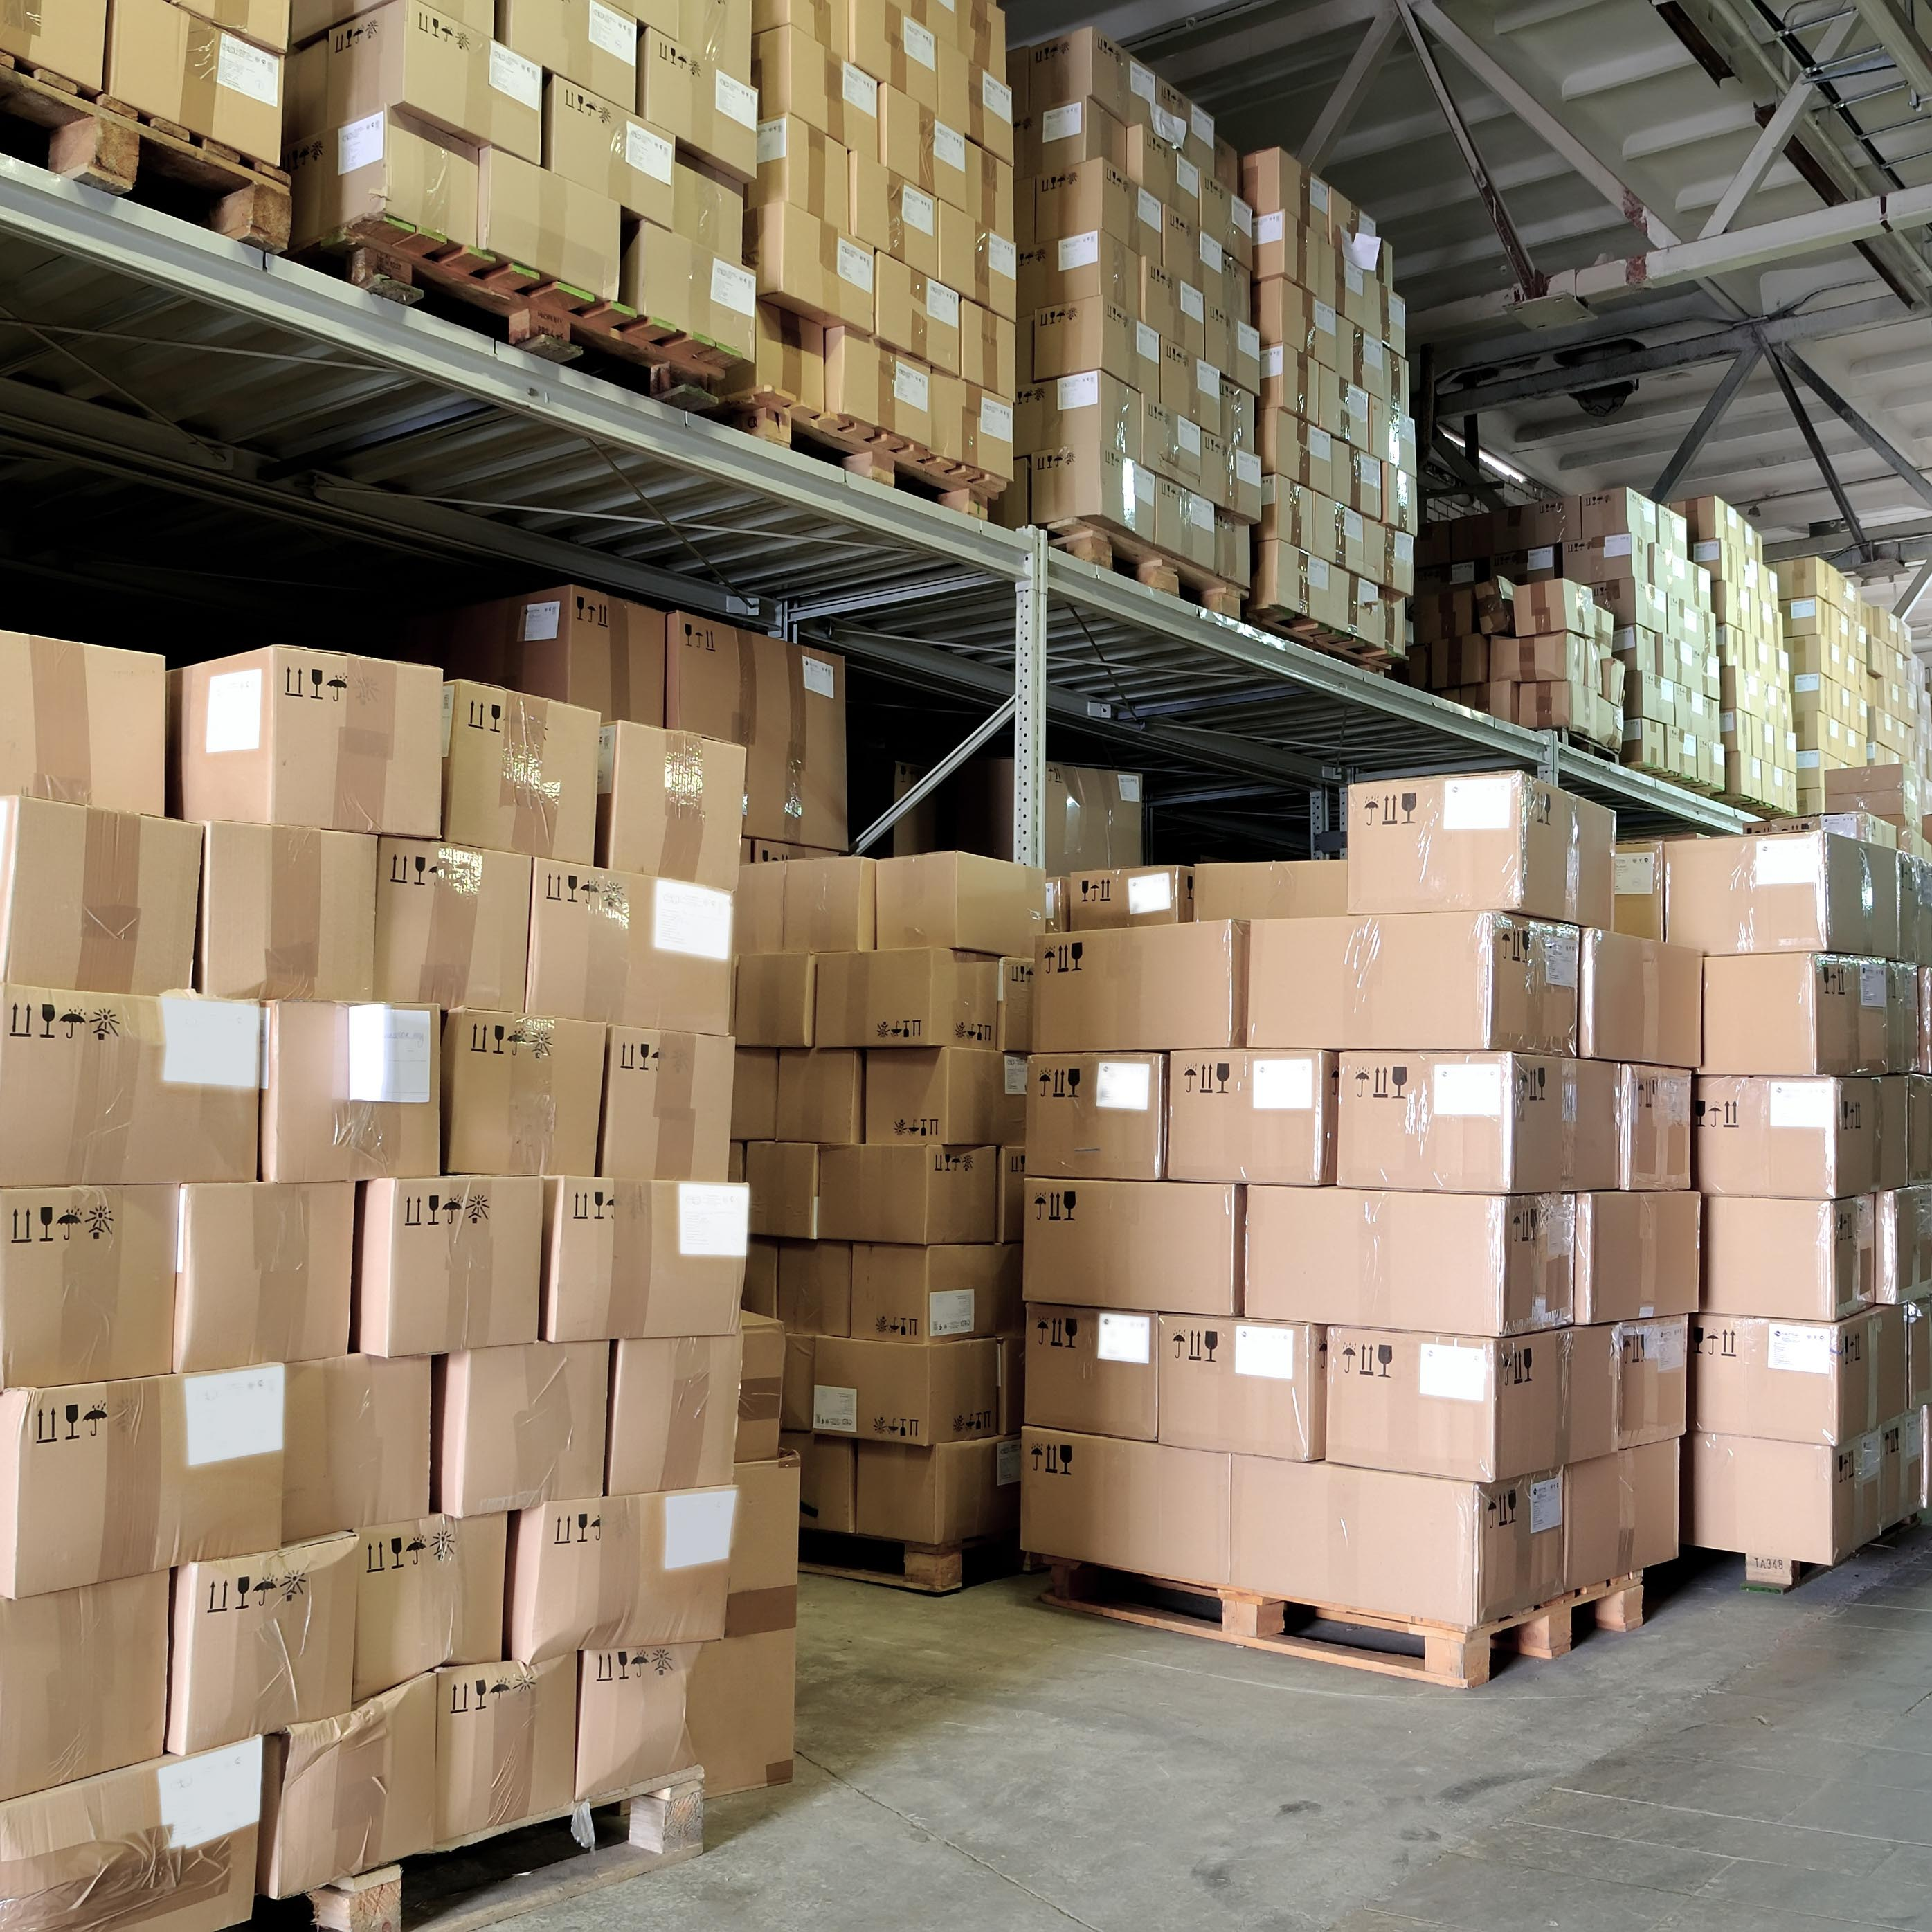 carton boxes in warehouse (perspective view)